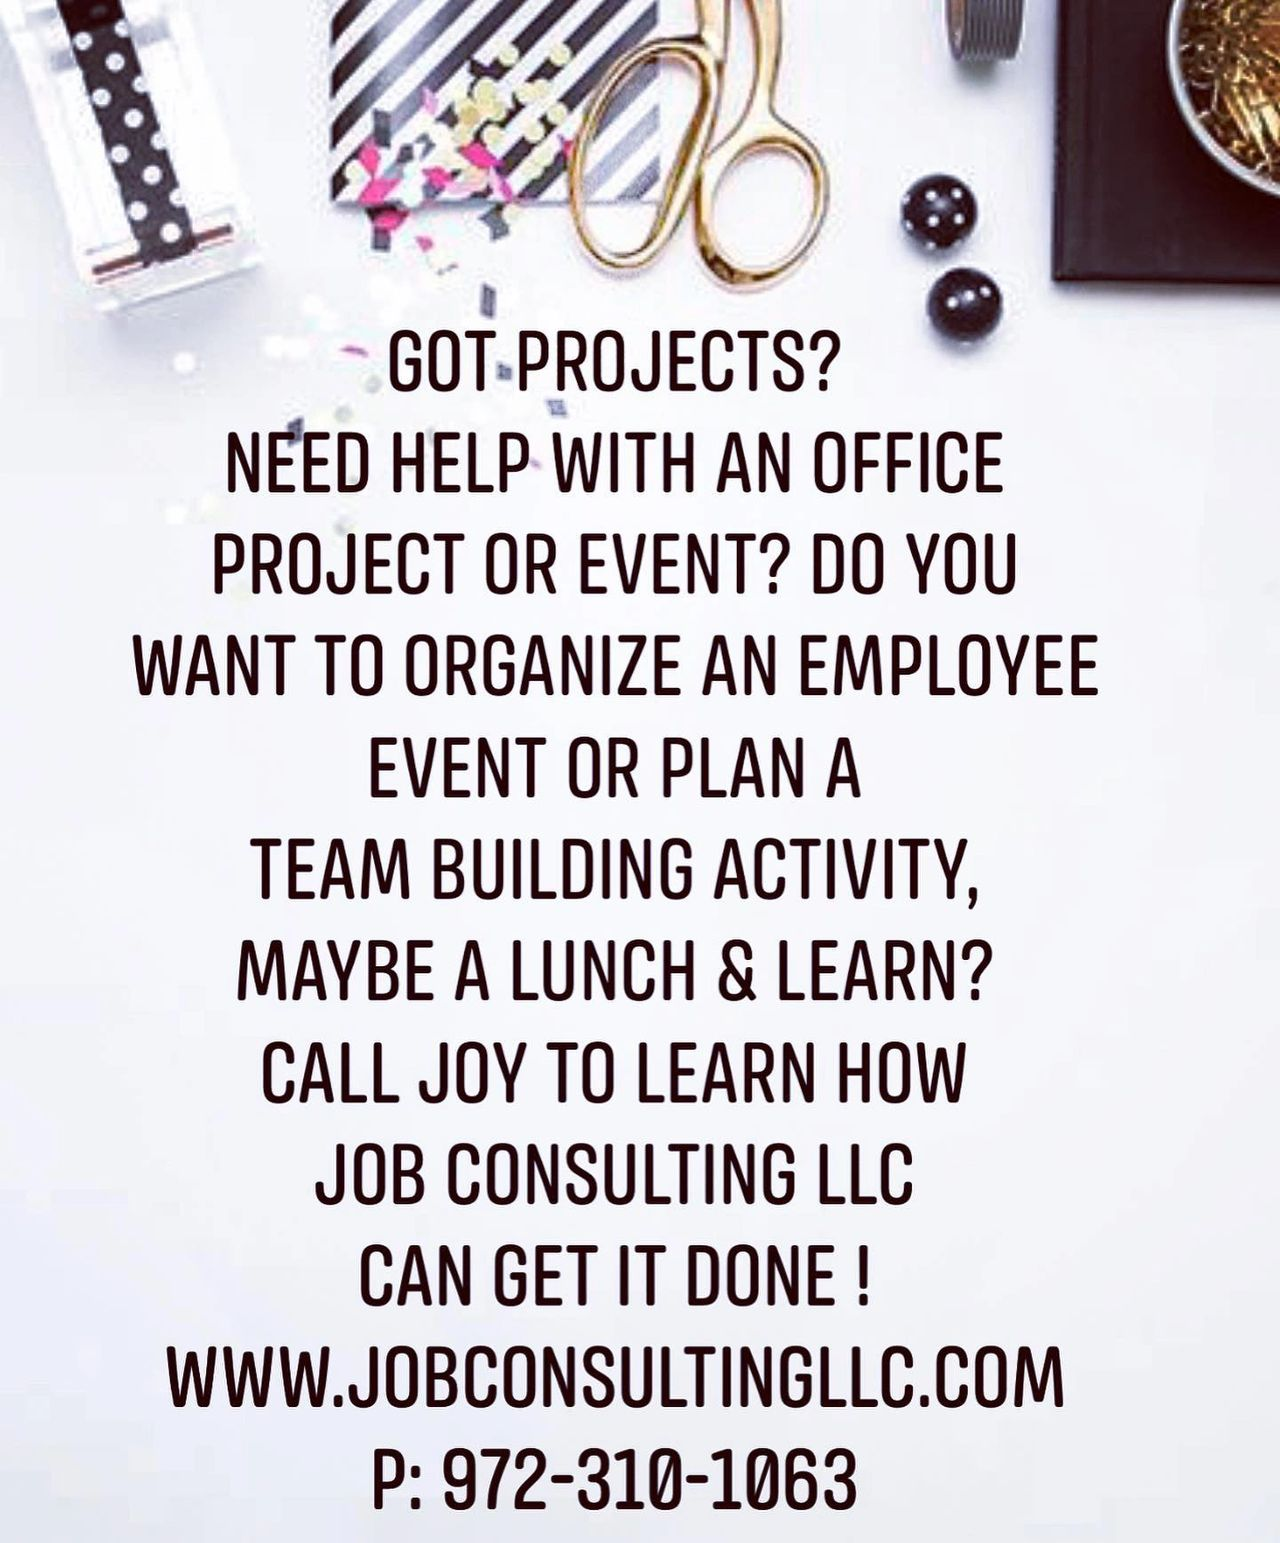 GOT Projects?